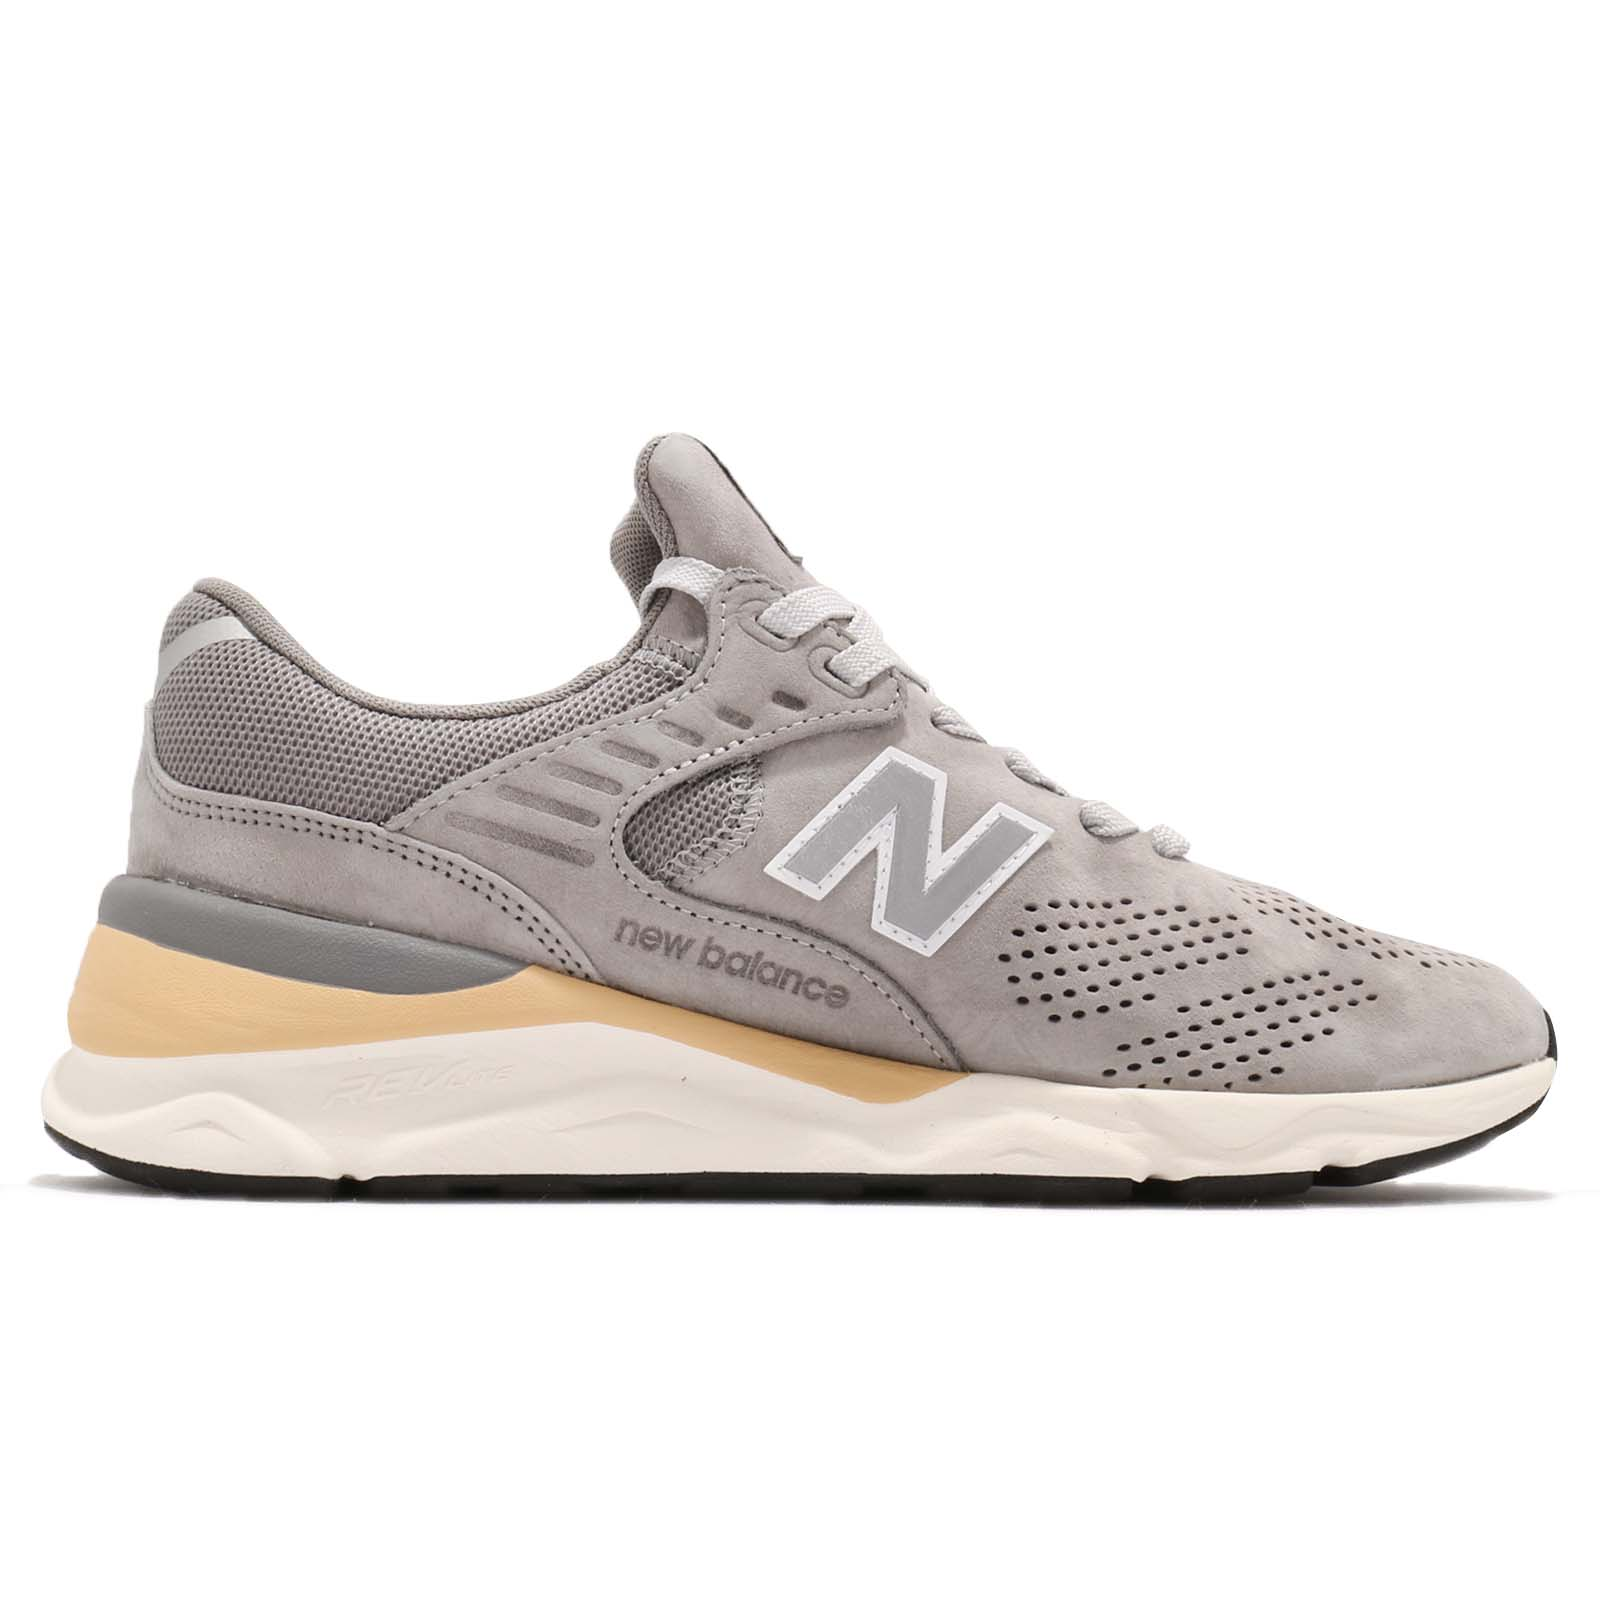 New Balance Gm500bsw Mens Lifestyle 500 Bluewhite Spec Dan Daftar 565 Sneakers Pria Hitam Condition Brand With Box